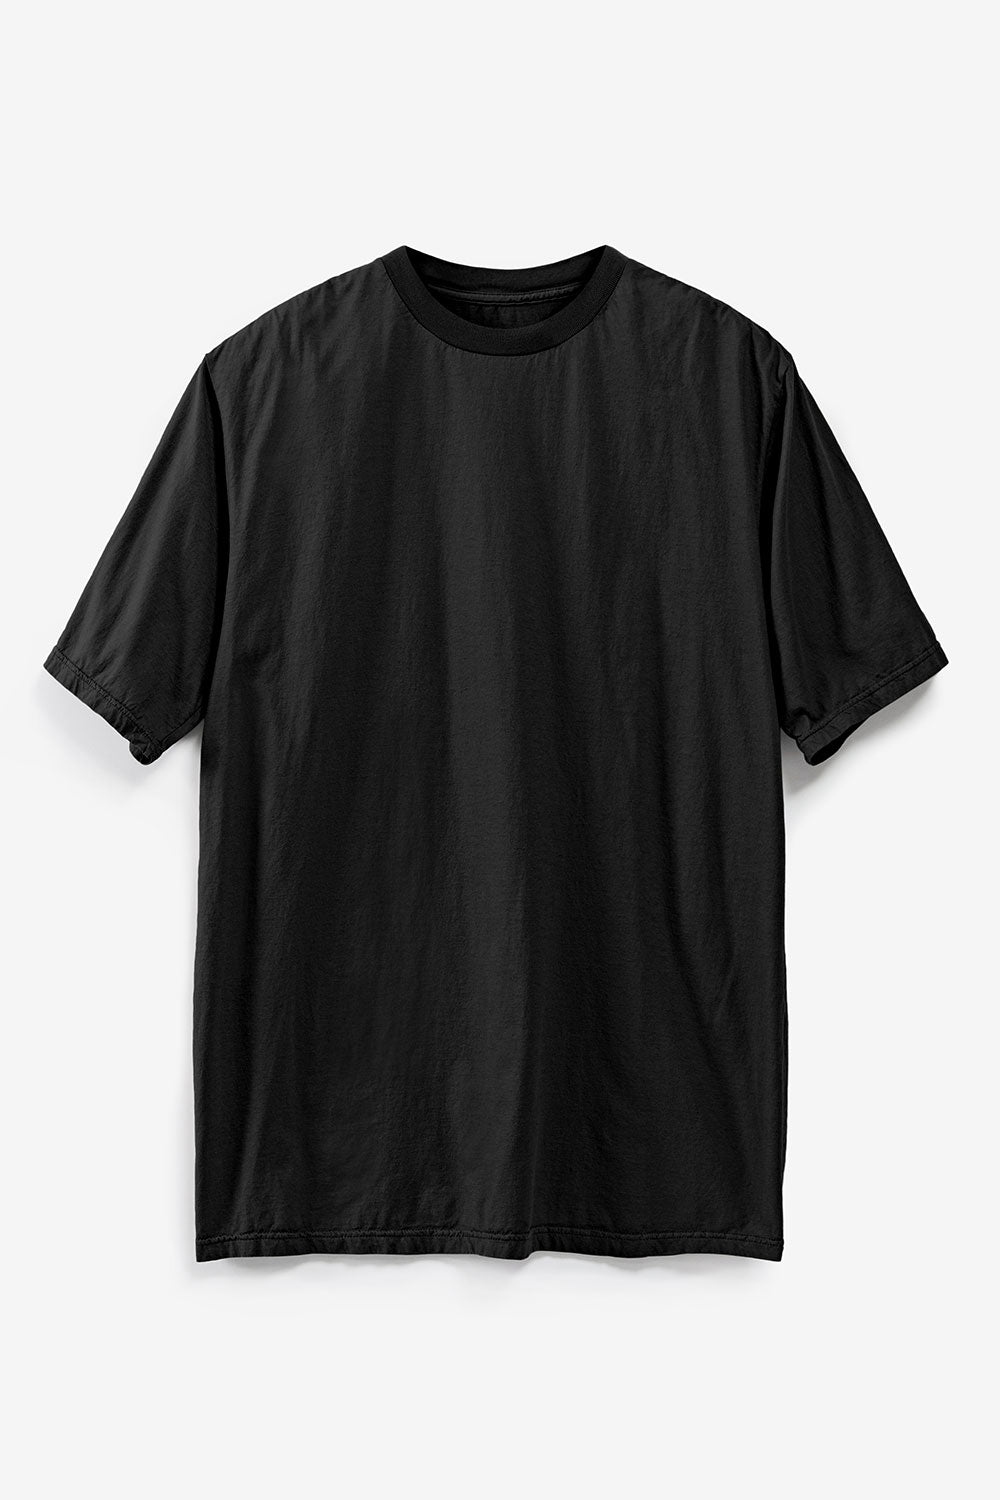 Alabama Chanin The Boyfriend Tee Machine Sewn Organic Cotton Tee in Black